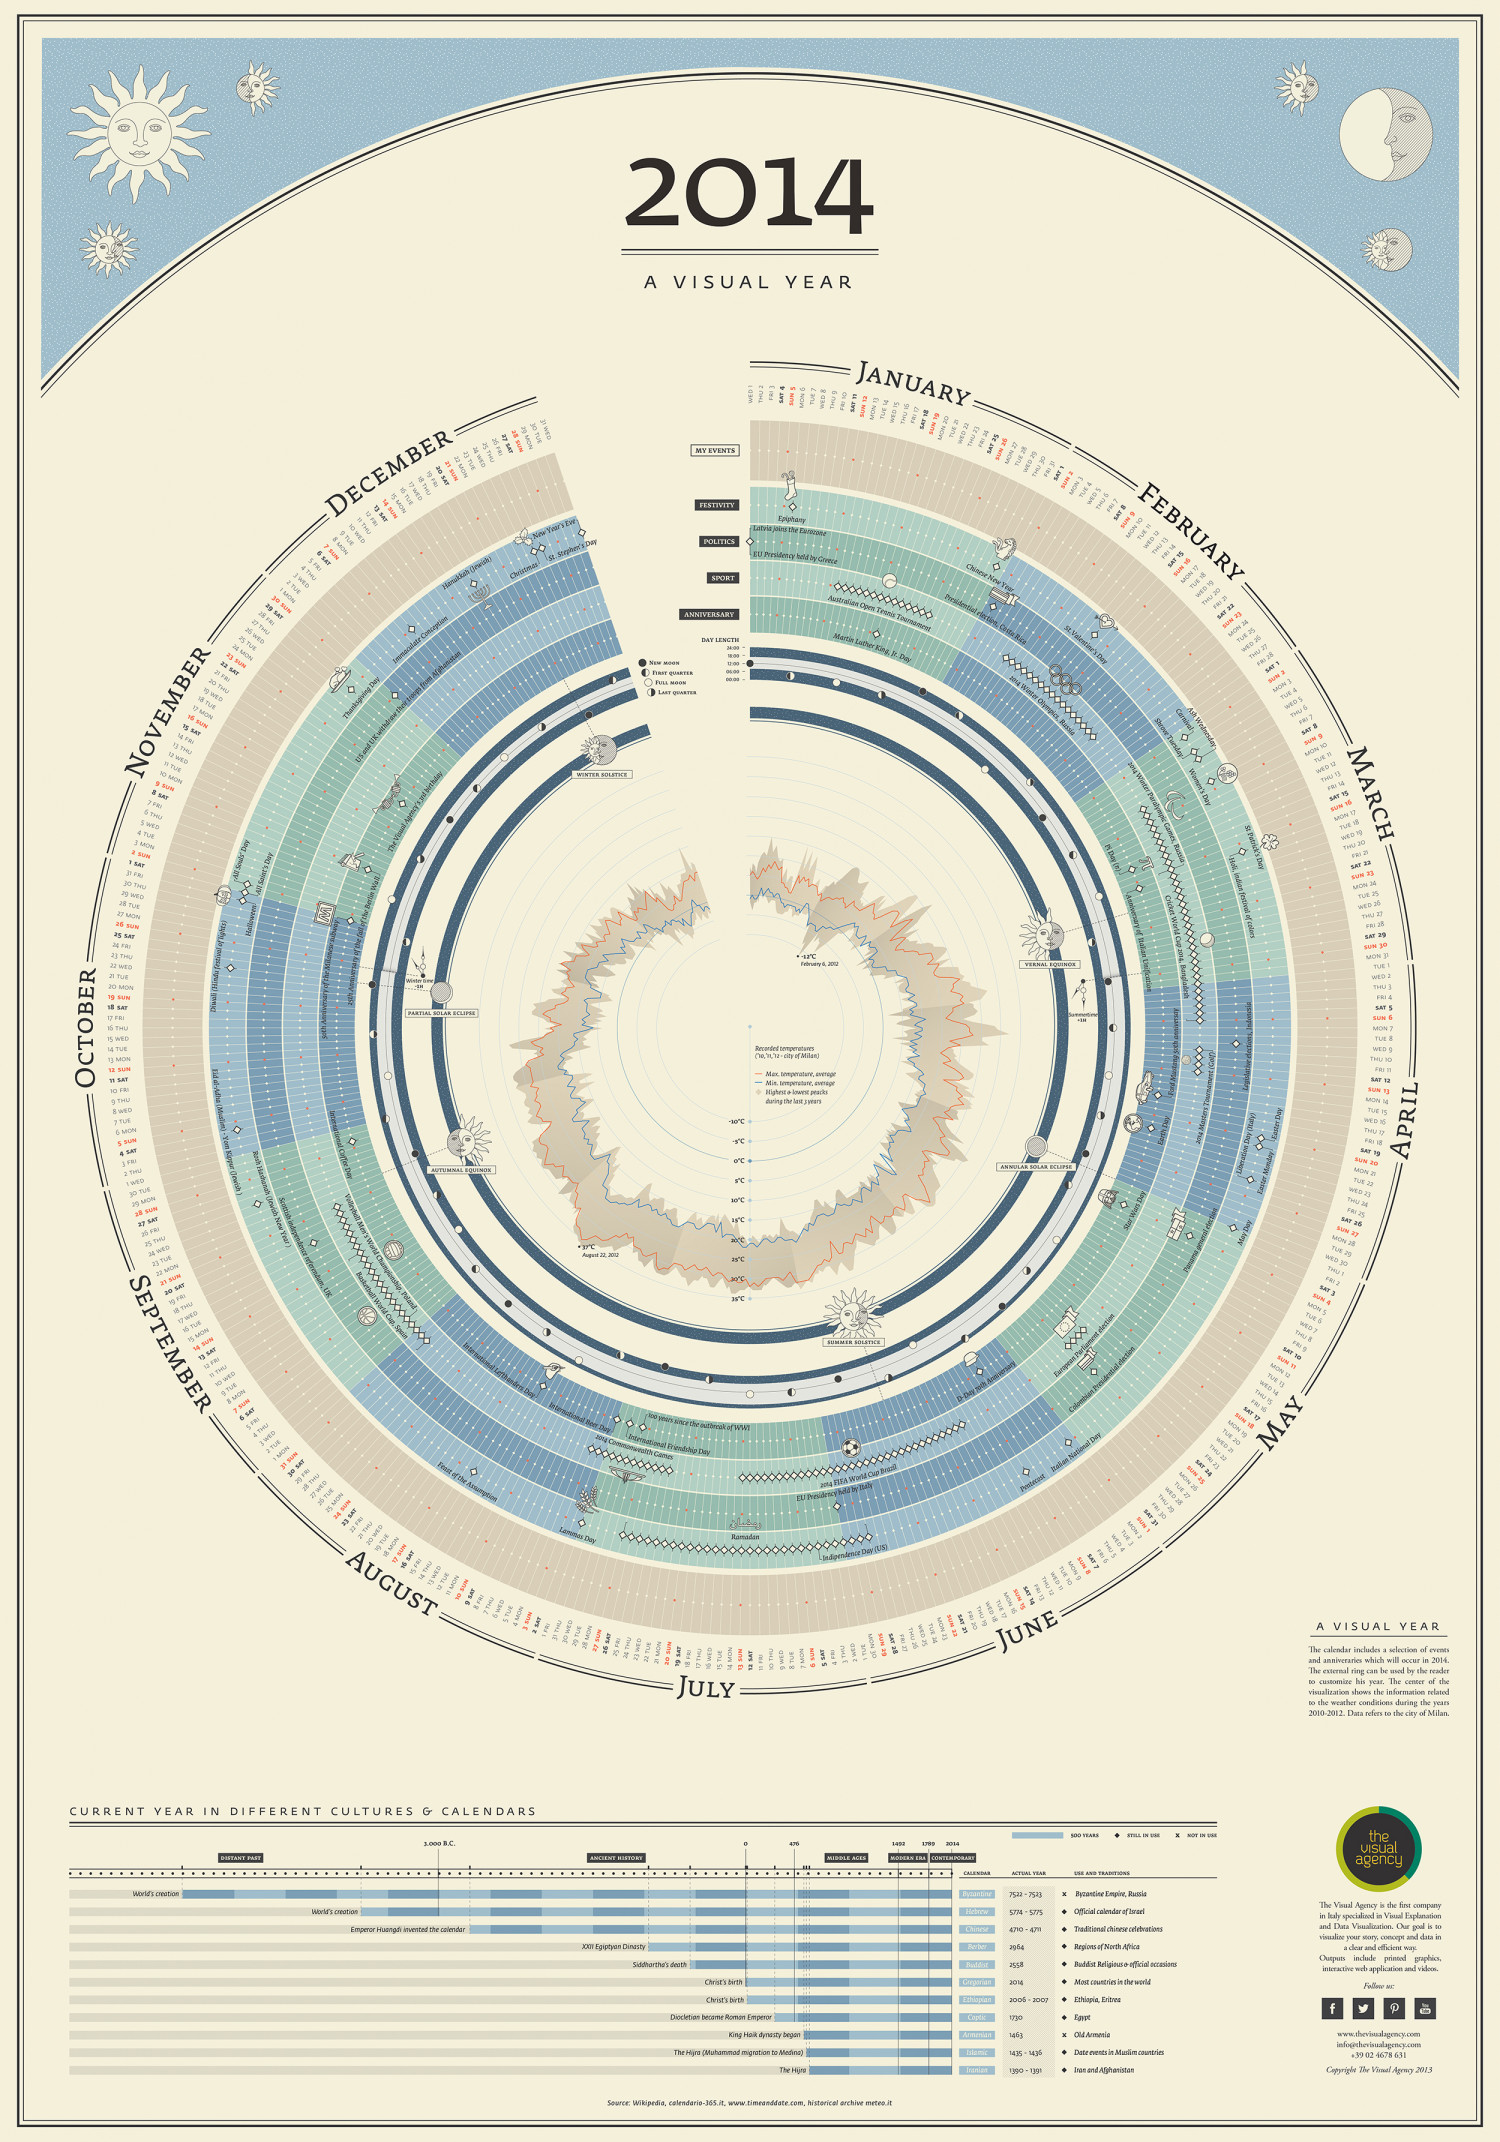 A Visual Year - 2014 Calendar Infographic